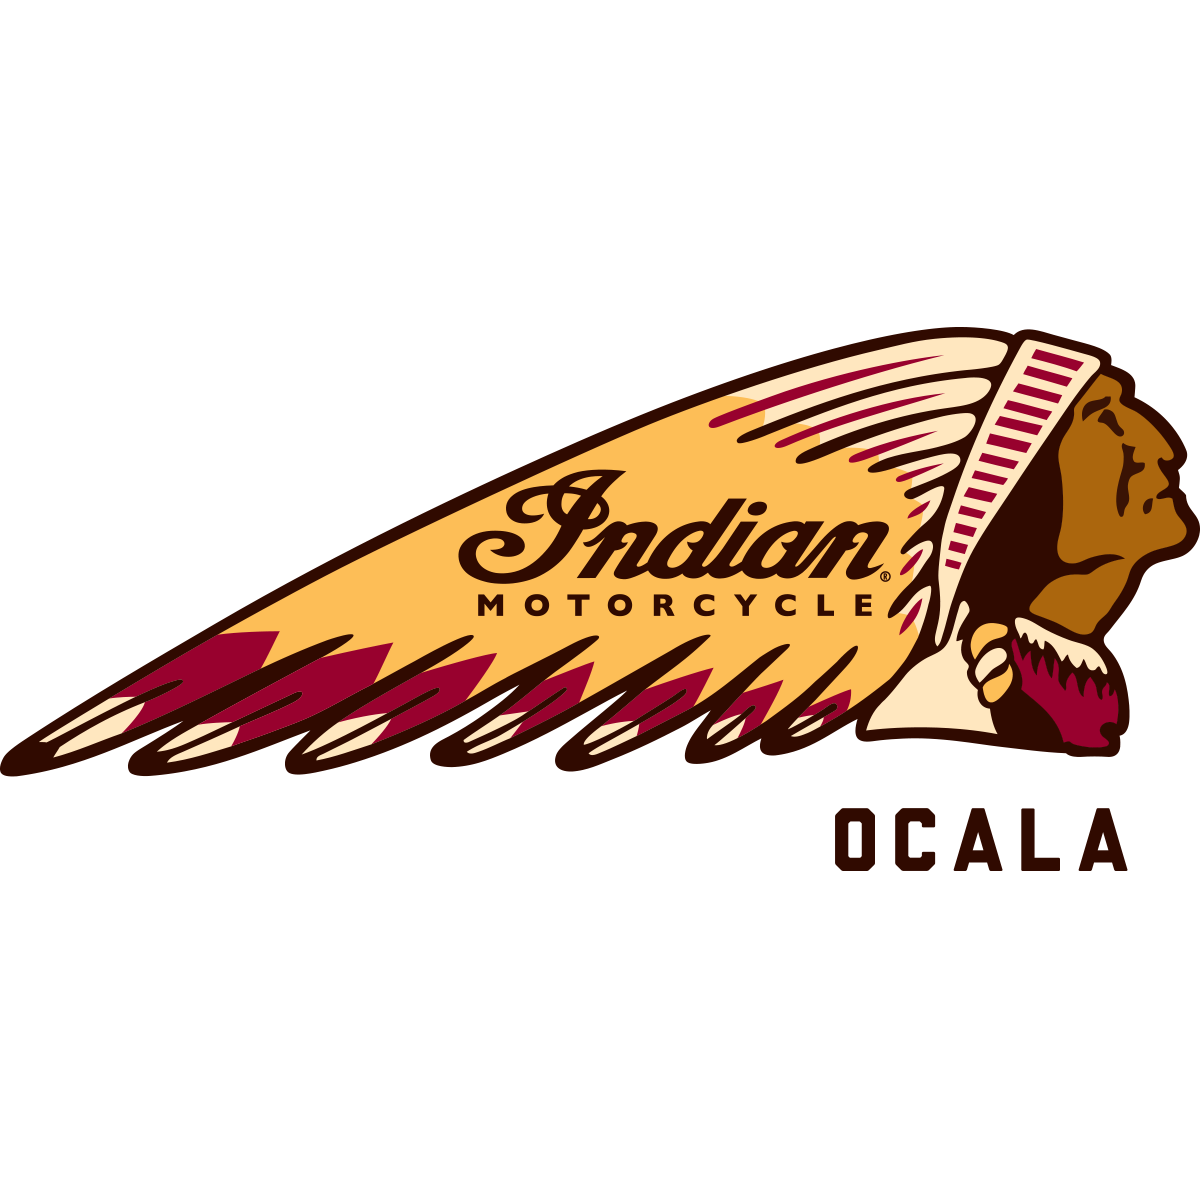 Motorcycle Stores Near Me >> Indian Motorcycle Ocala Coupons near me in Ocala | 8coupons